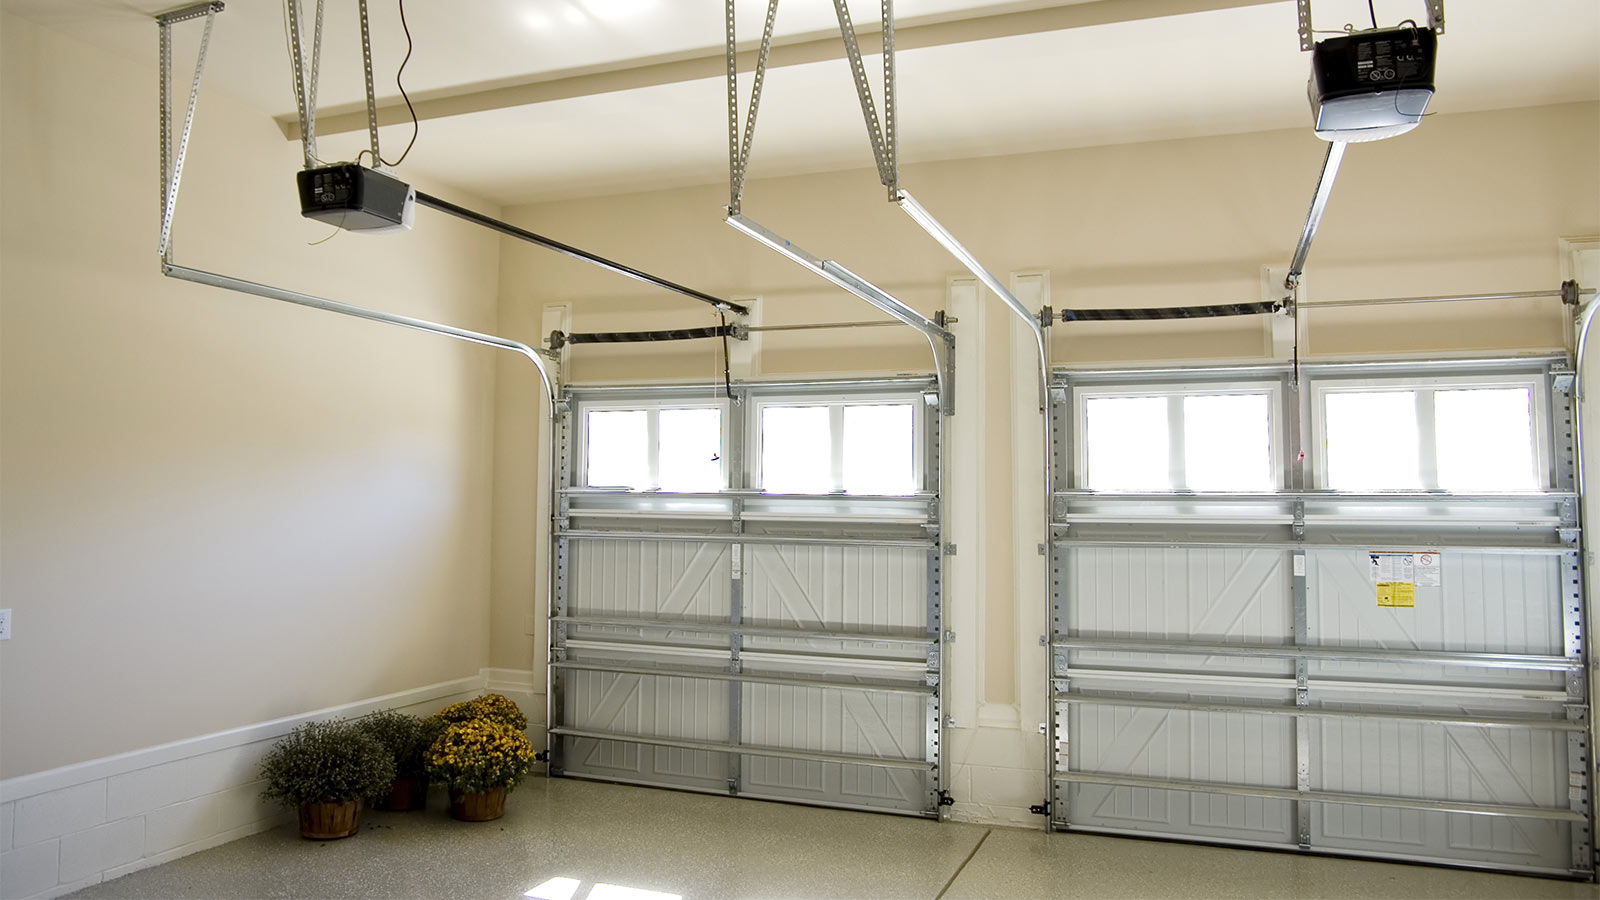 Sectional Garage Doors from Roller Shutters East London suppliers.